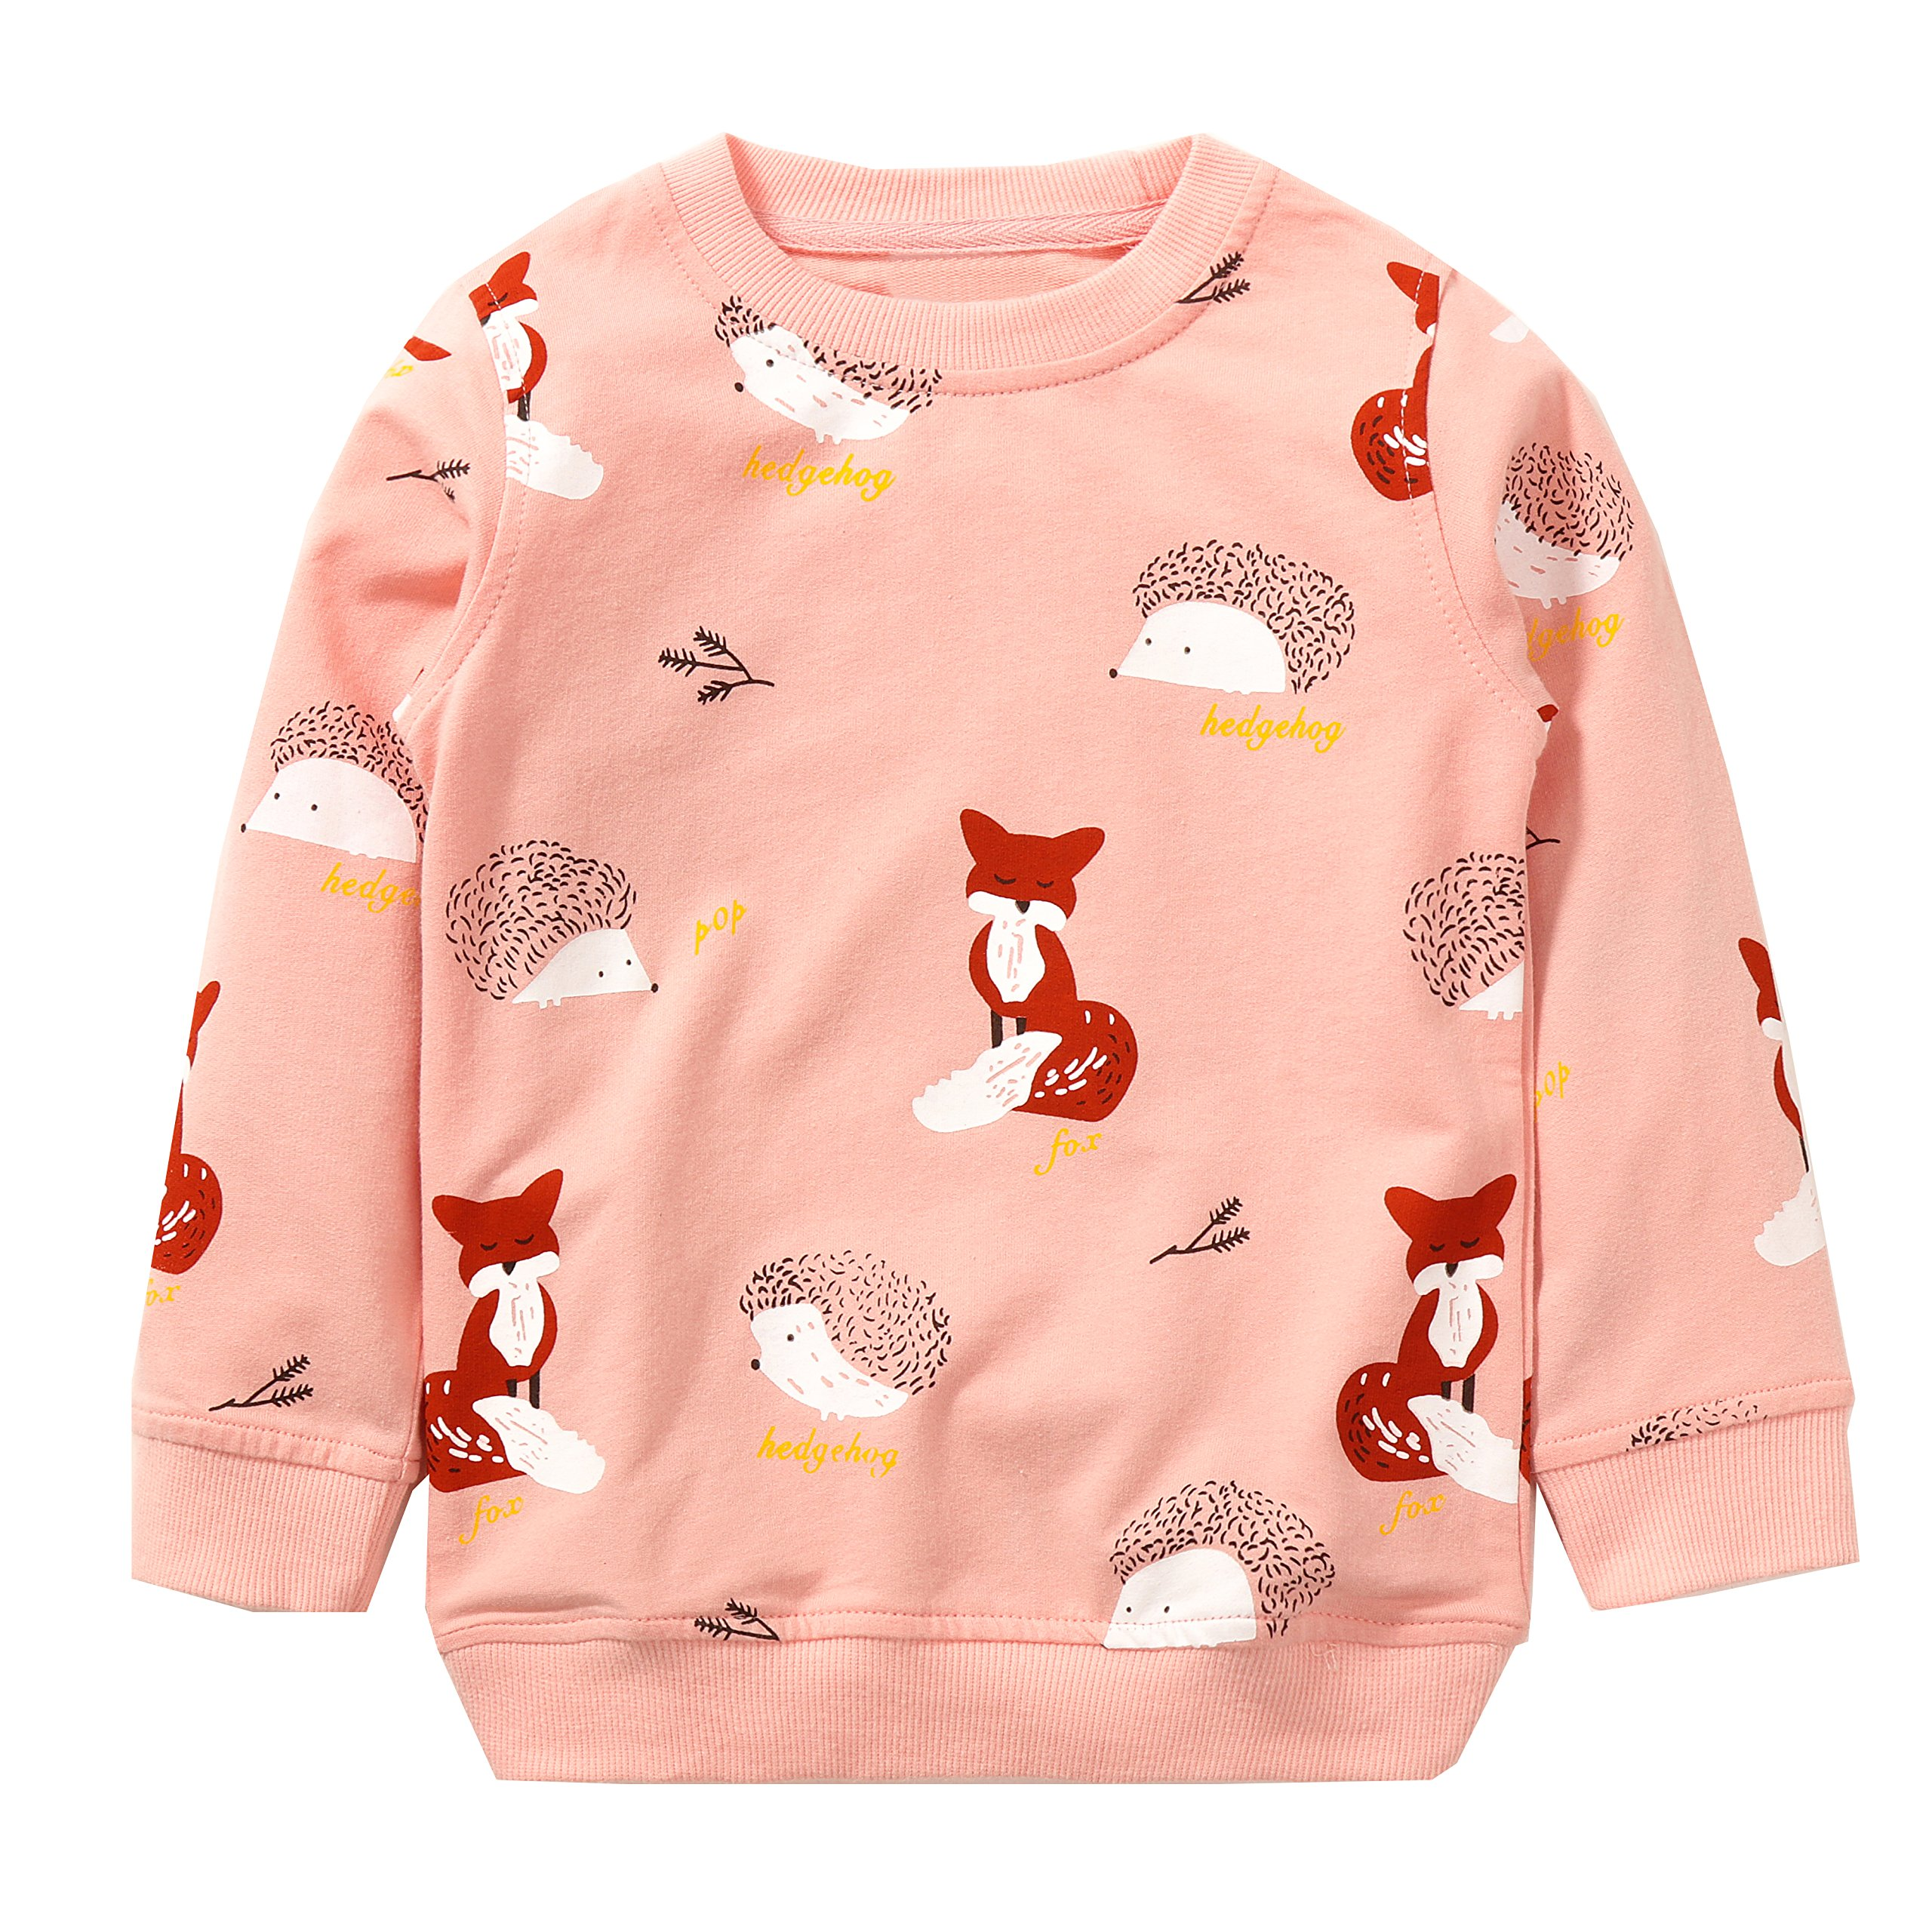 Bumeex Girls Cotton Crewneck Cute Sweatshirts The Hedgehog and The Fox Pink 2-7T 7T(6-7 Years)